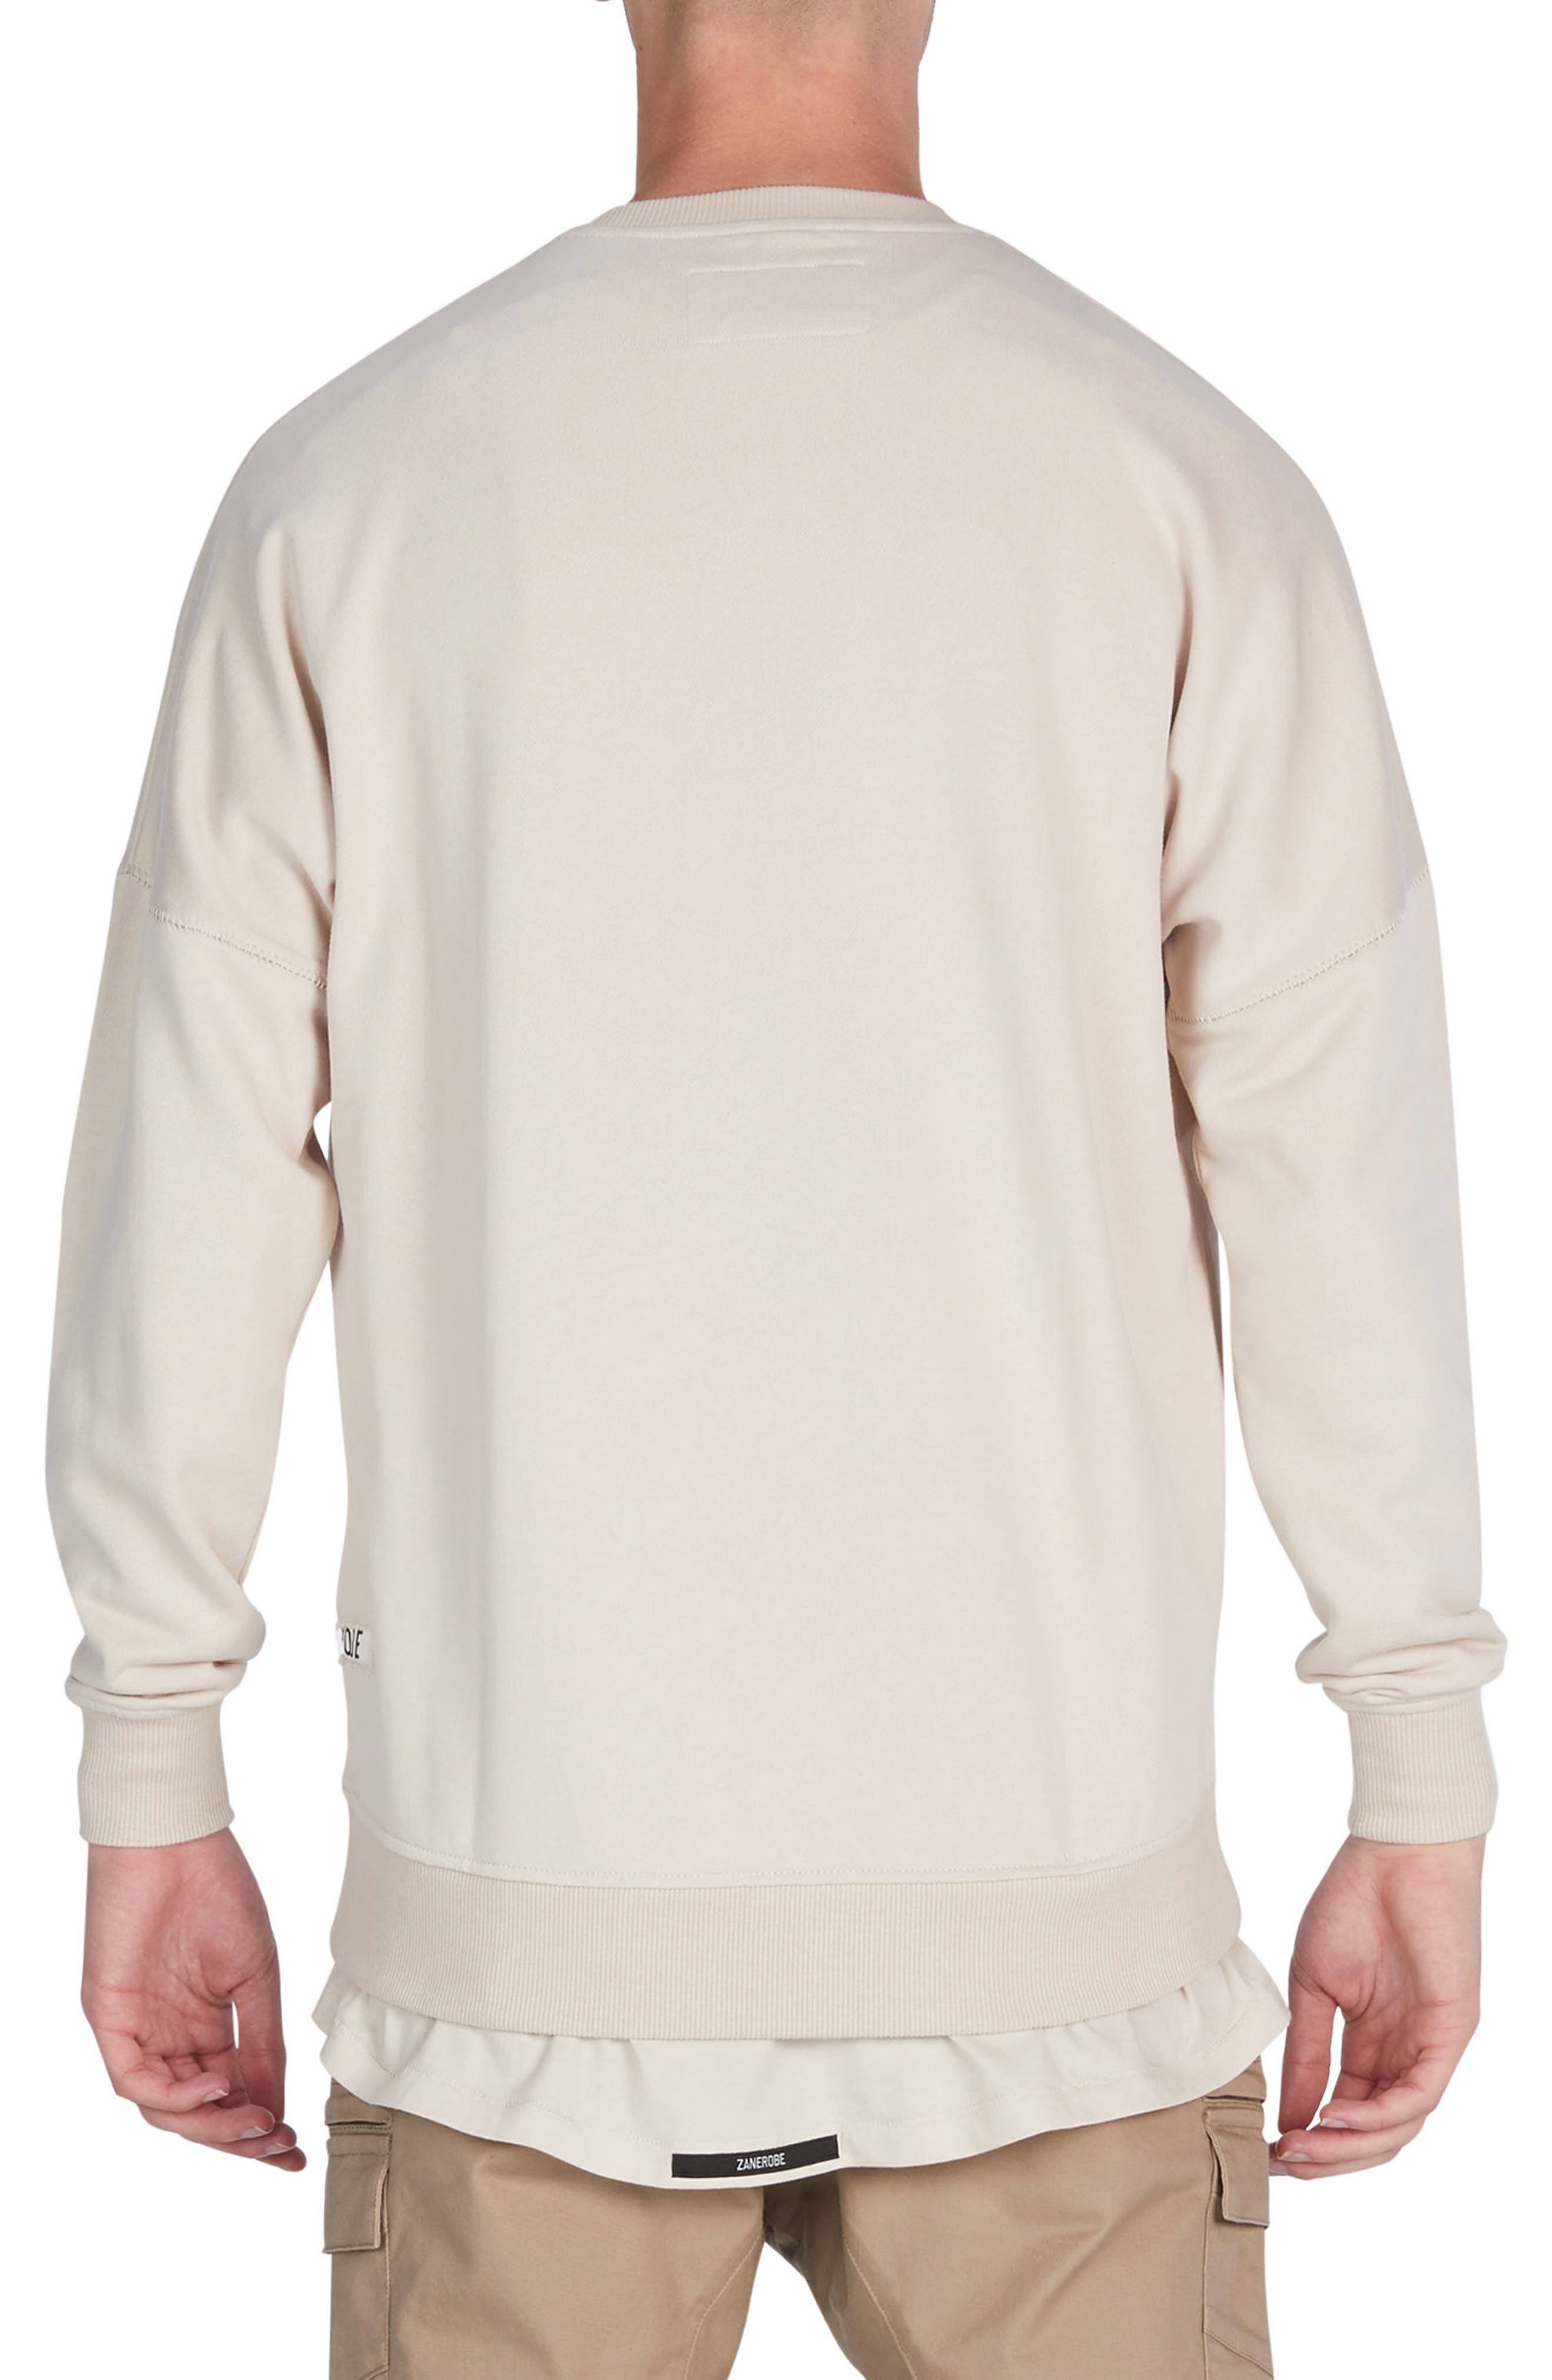 Rugger Crewneck Sweater,                             Alternate thumbnail 2, color,                             251